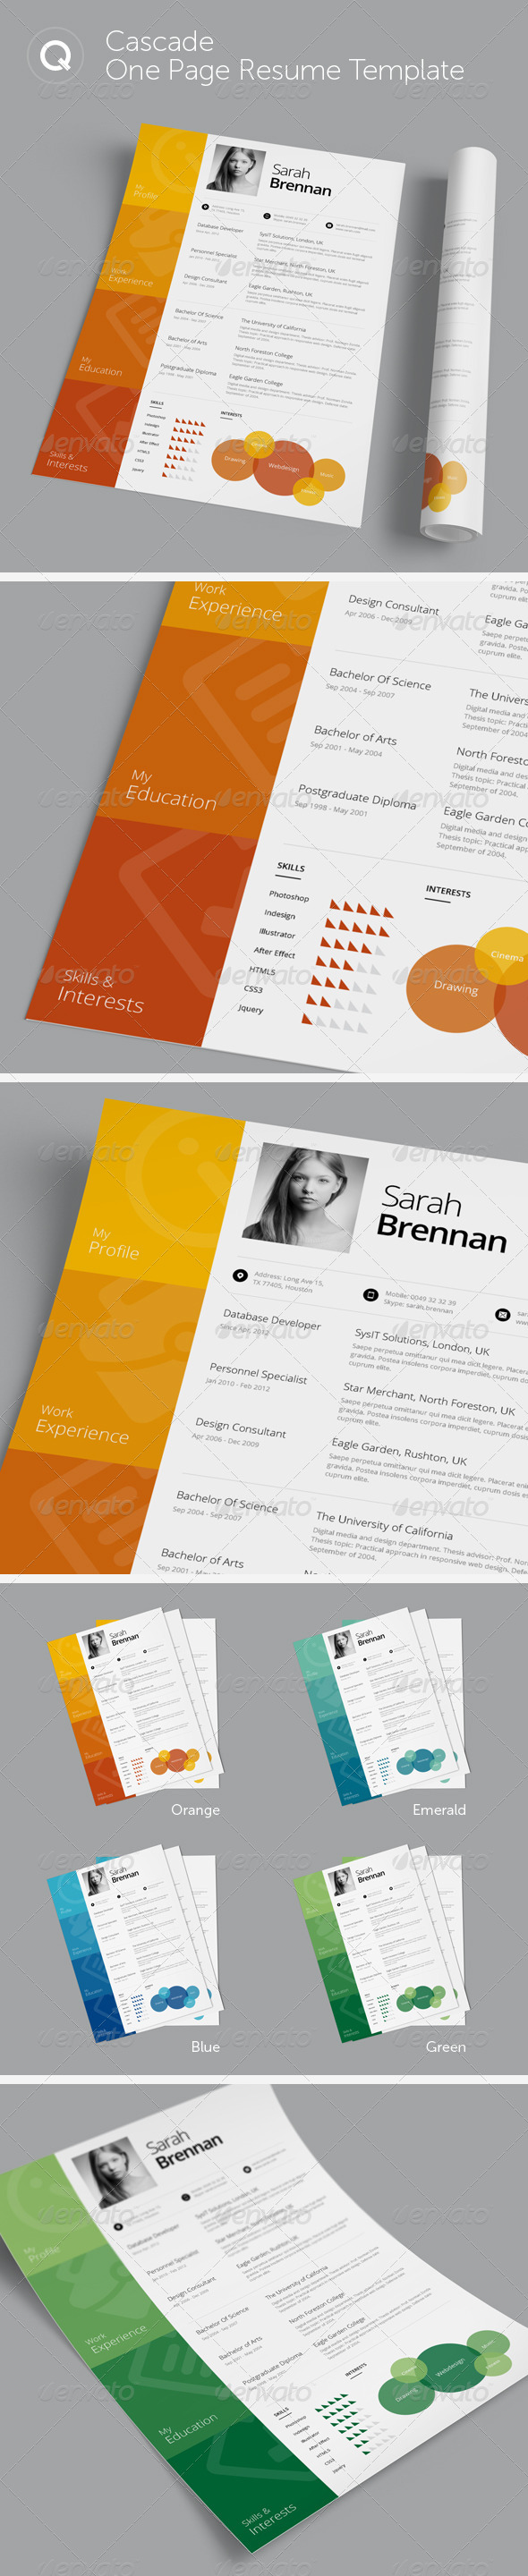 GraphicRiver Cascade One Page Resume Template 6200526